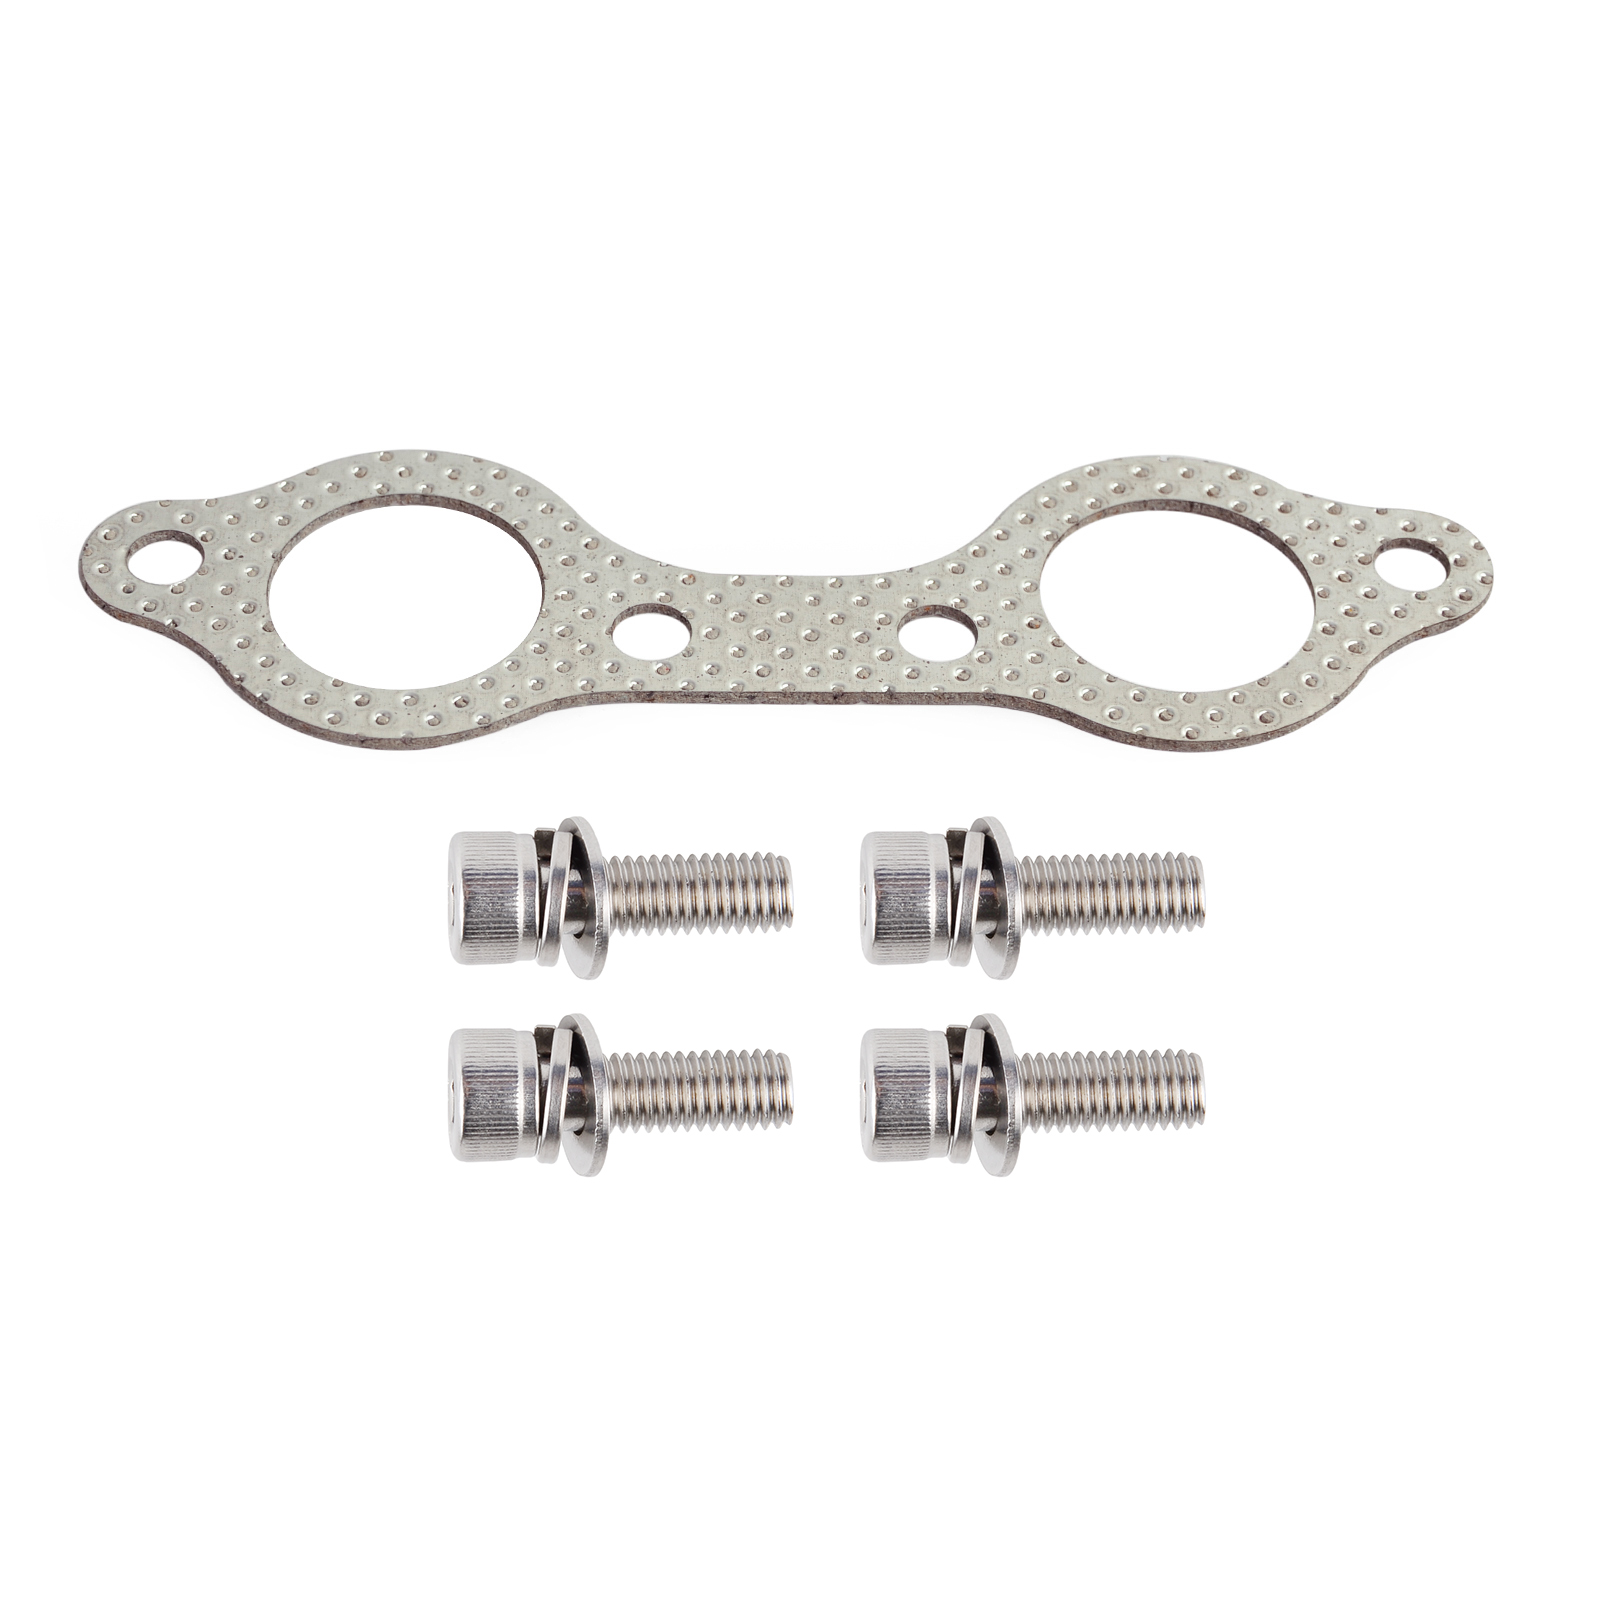 Exhaust Muffler Gasket Bolts For Polaris RZR 800 EFI LE